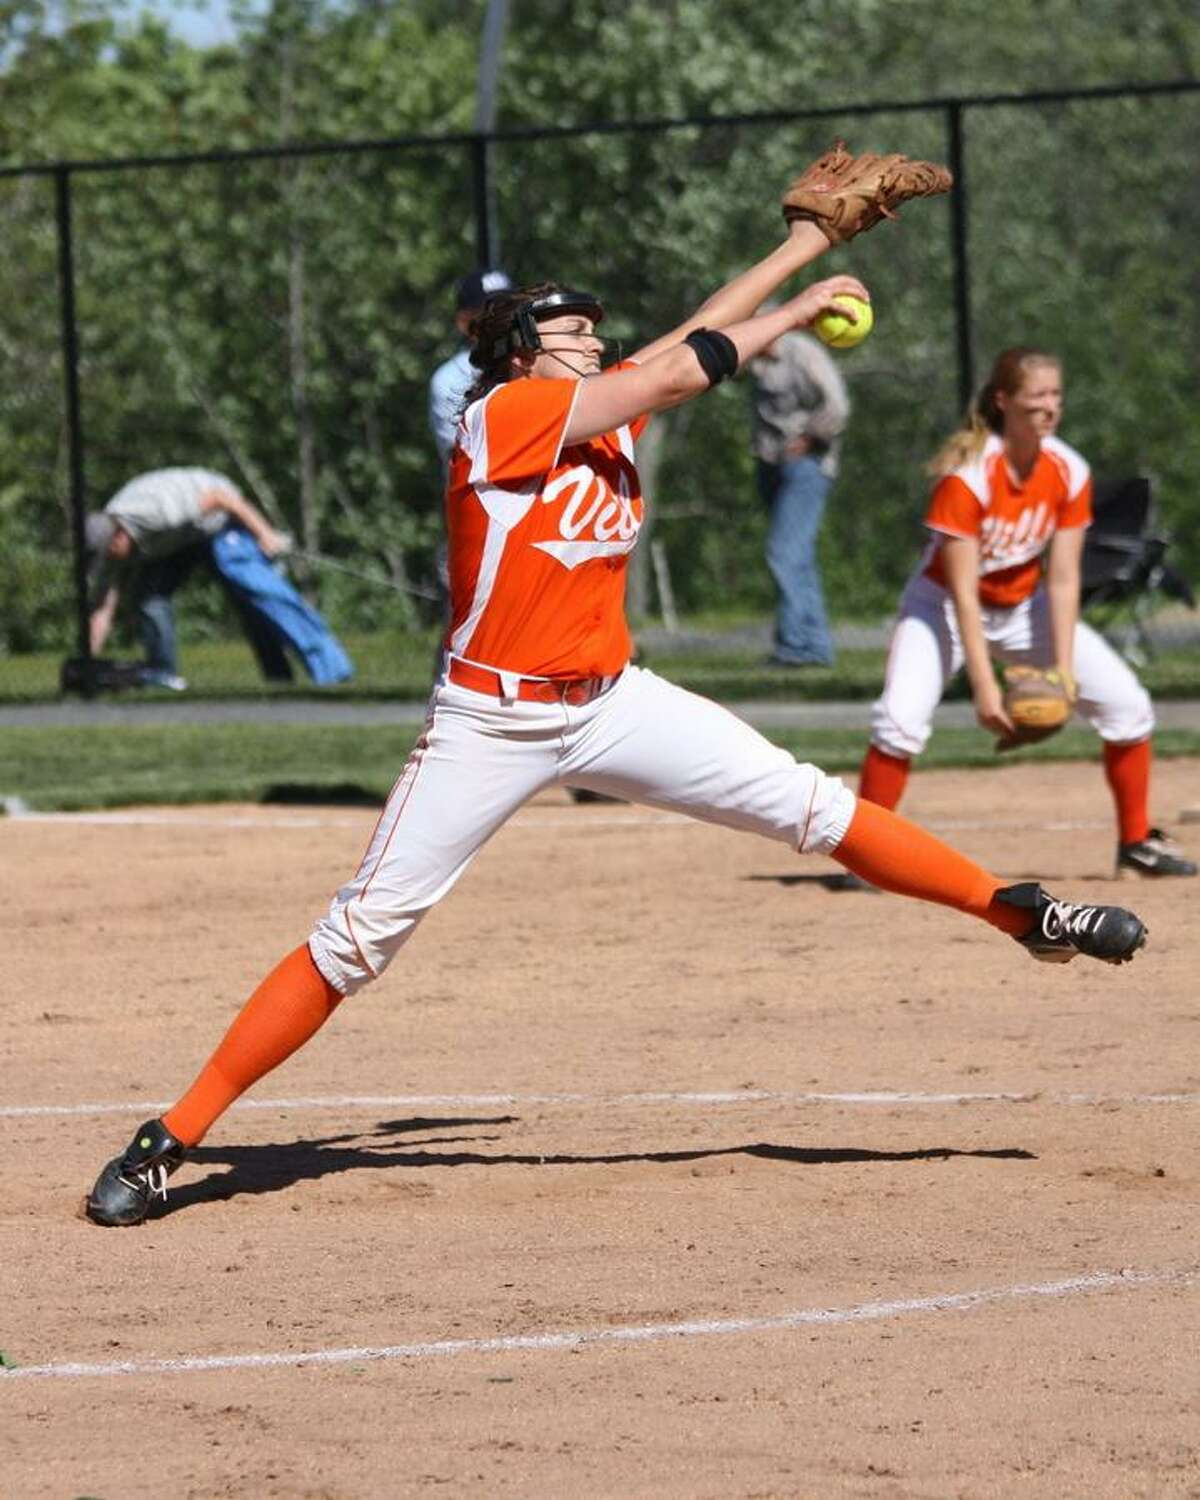 MARIANNE KILLACKEY/Register Citizen Correspondent Terryville's Jaime Bridge delivers a pitch during the Kangaroos' 4-1 win over East Granby in Terryville on Thursday.